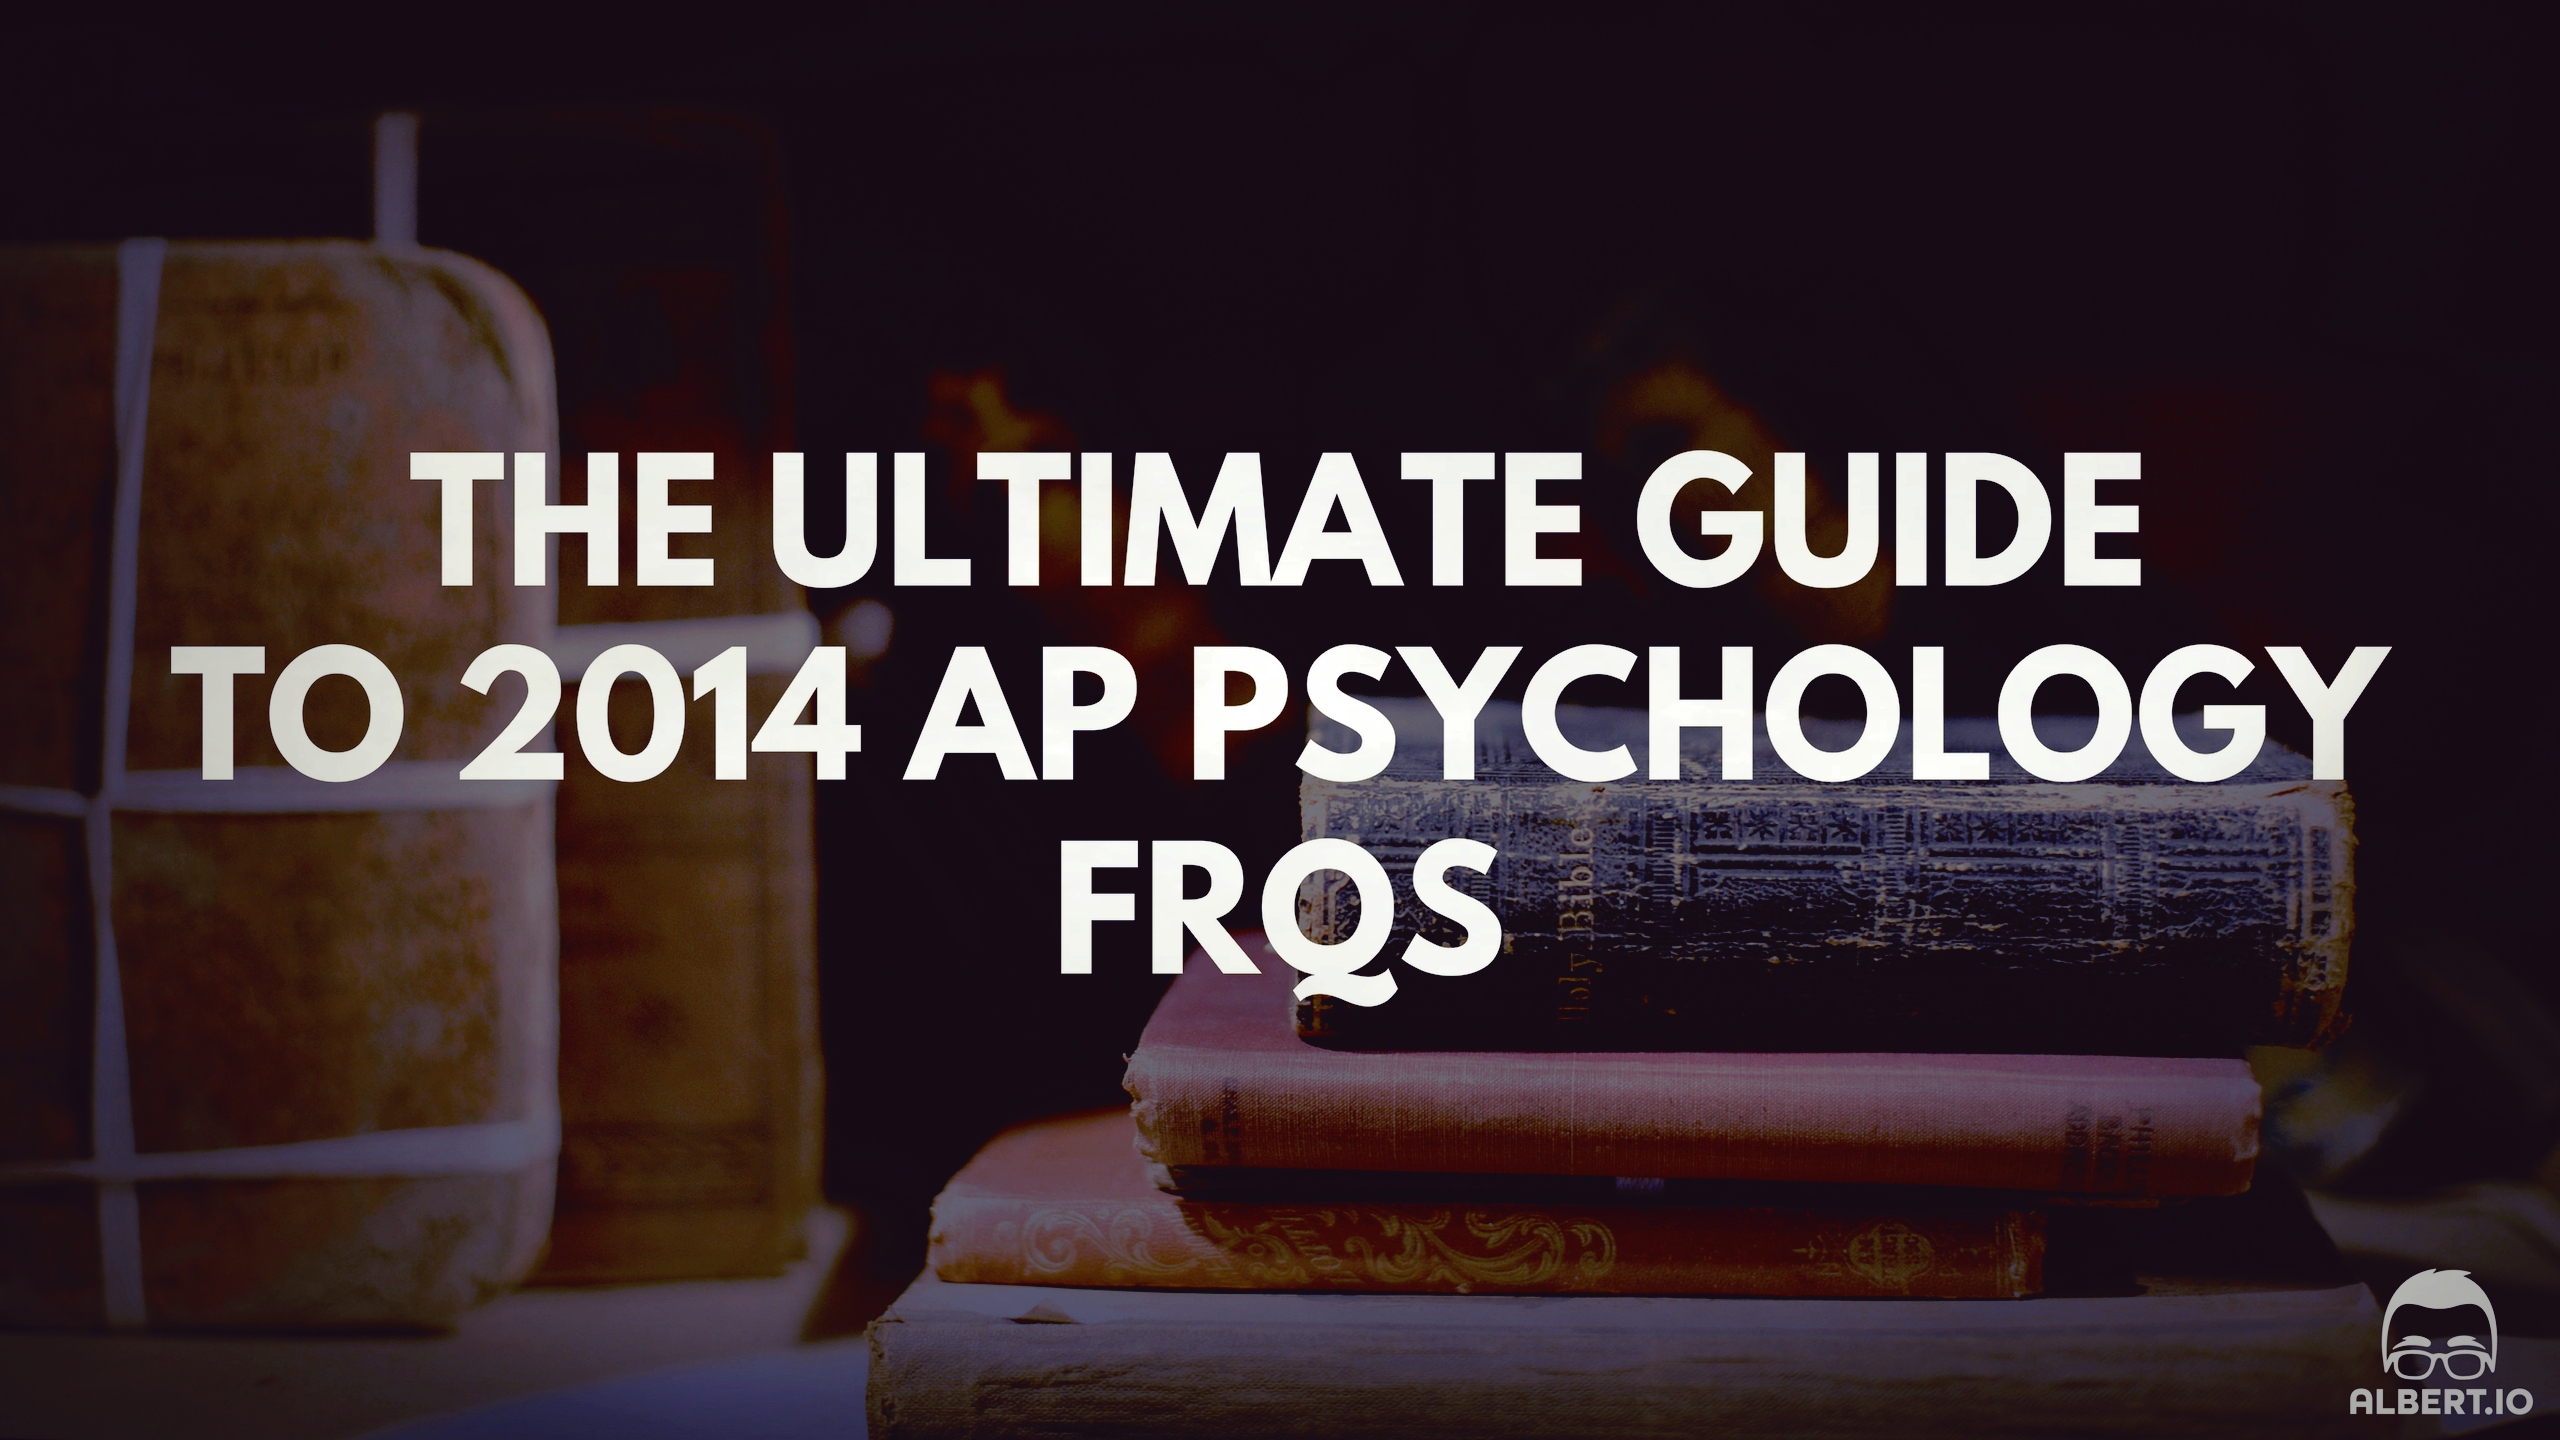 The Ultimate Guide To Ap Psychology Frqs